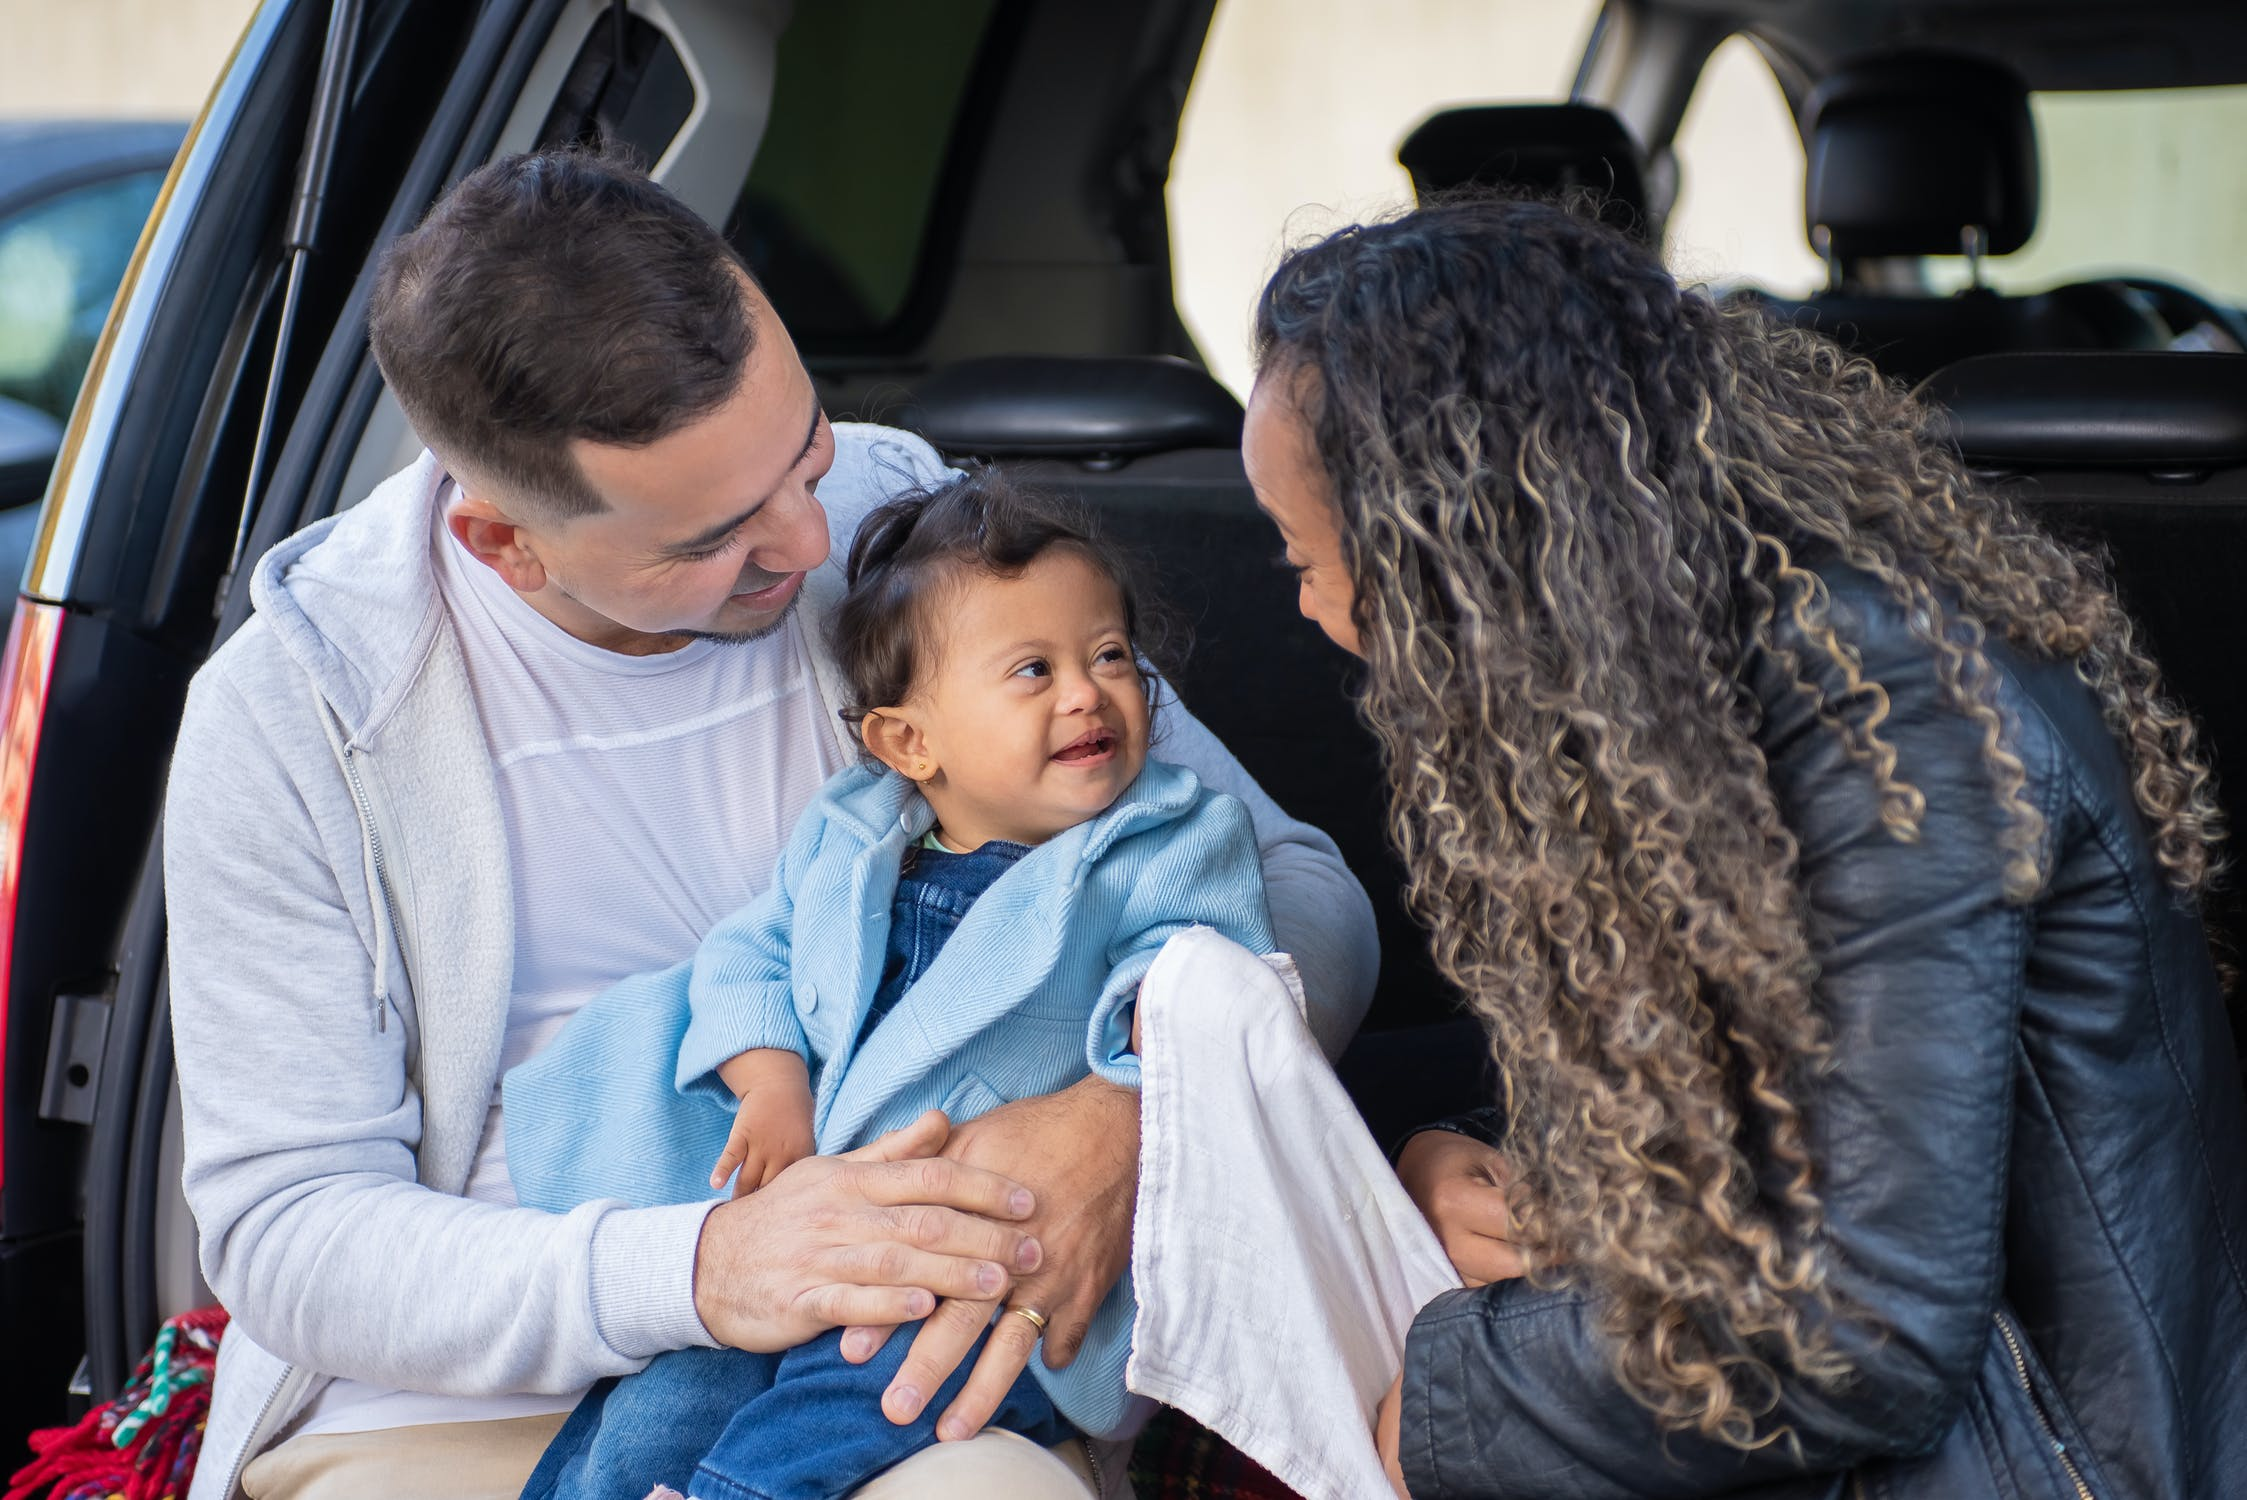 Health Coaching Parents of Special needs. Everyone needs a little care.